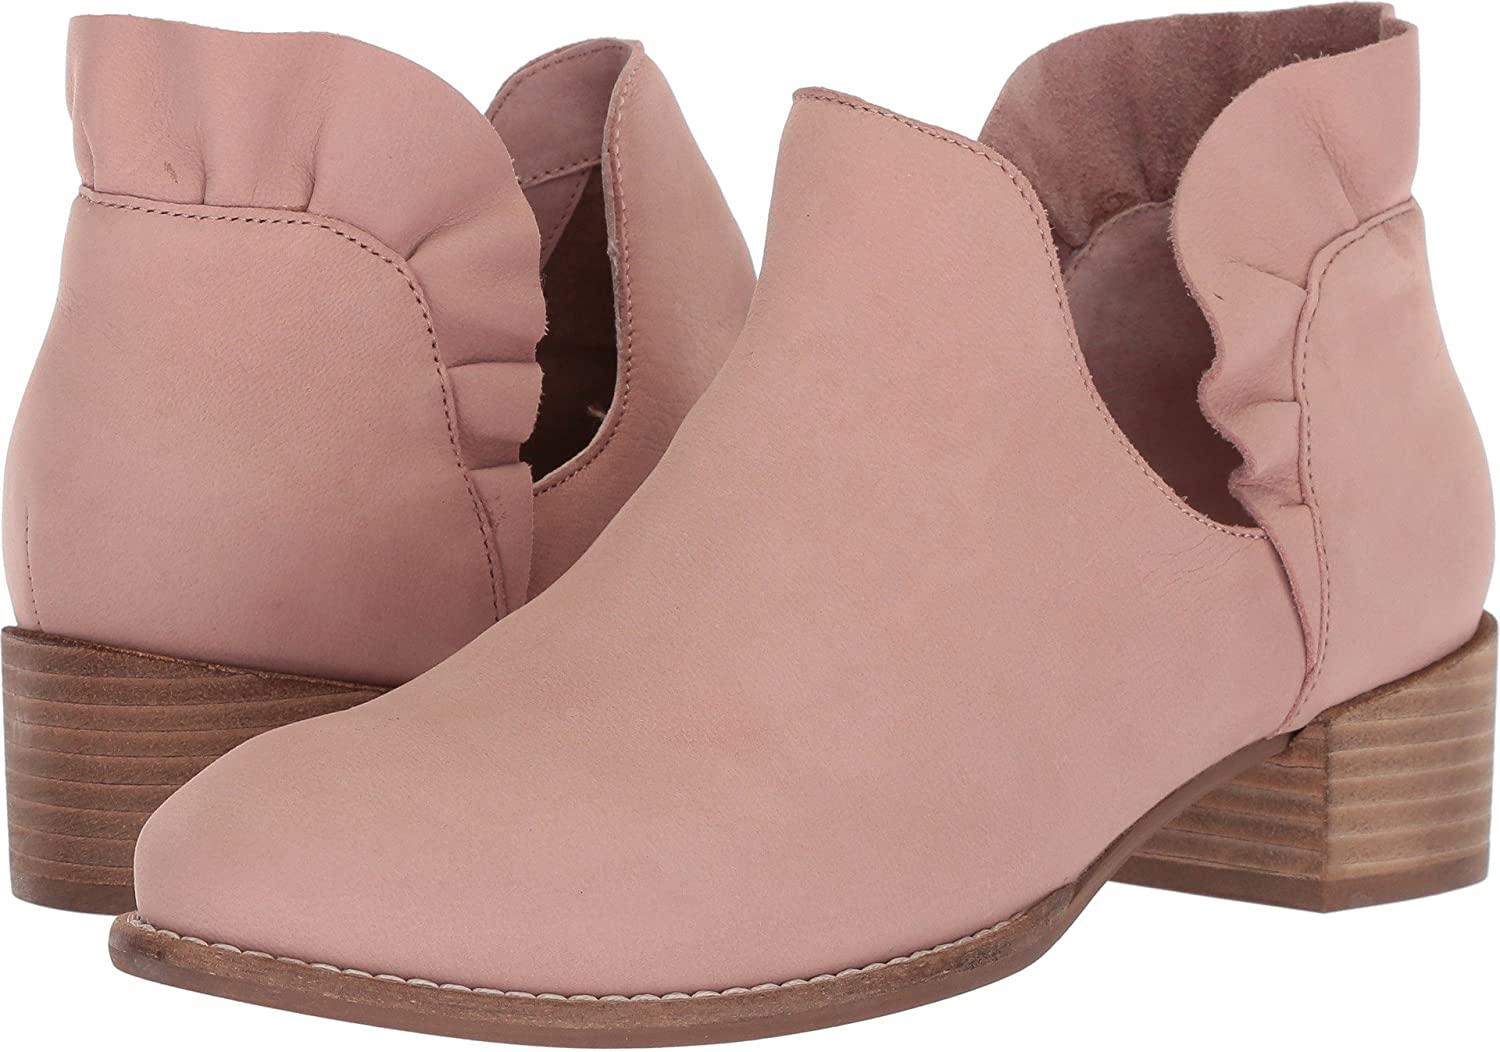 Seychelles Women's Renowned Ankle Boot B079HGS51Y 6.5 B(M) US|Pink Nubuck